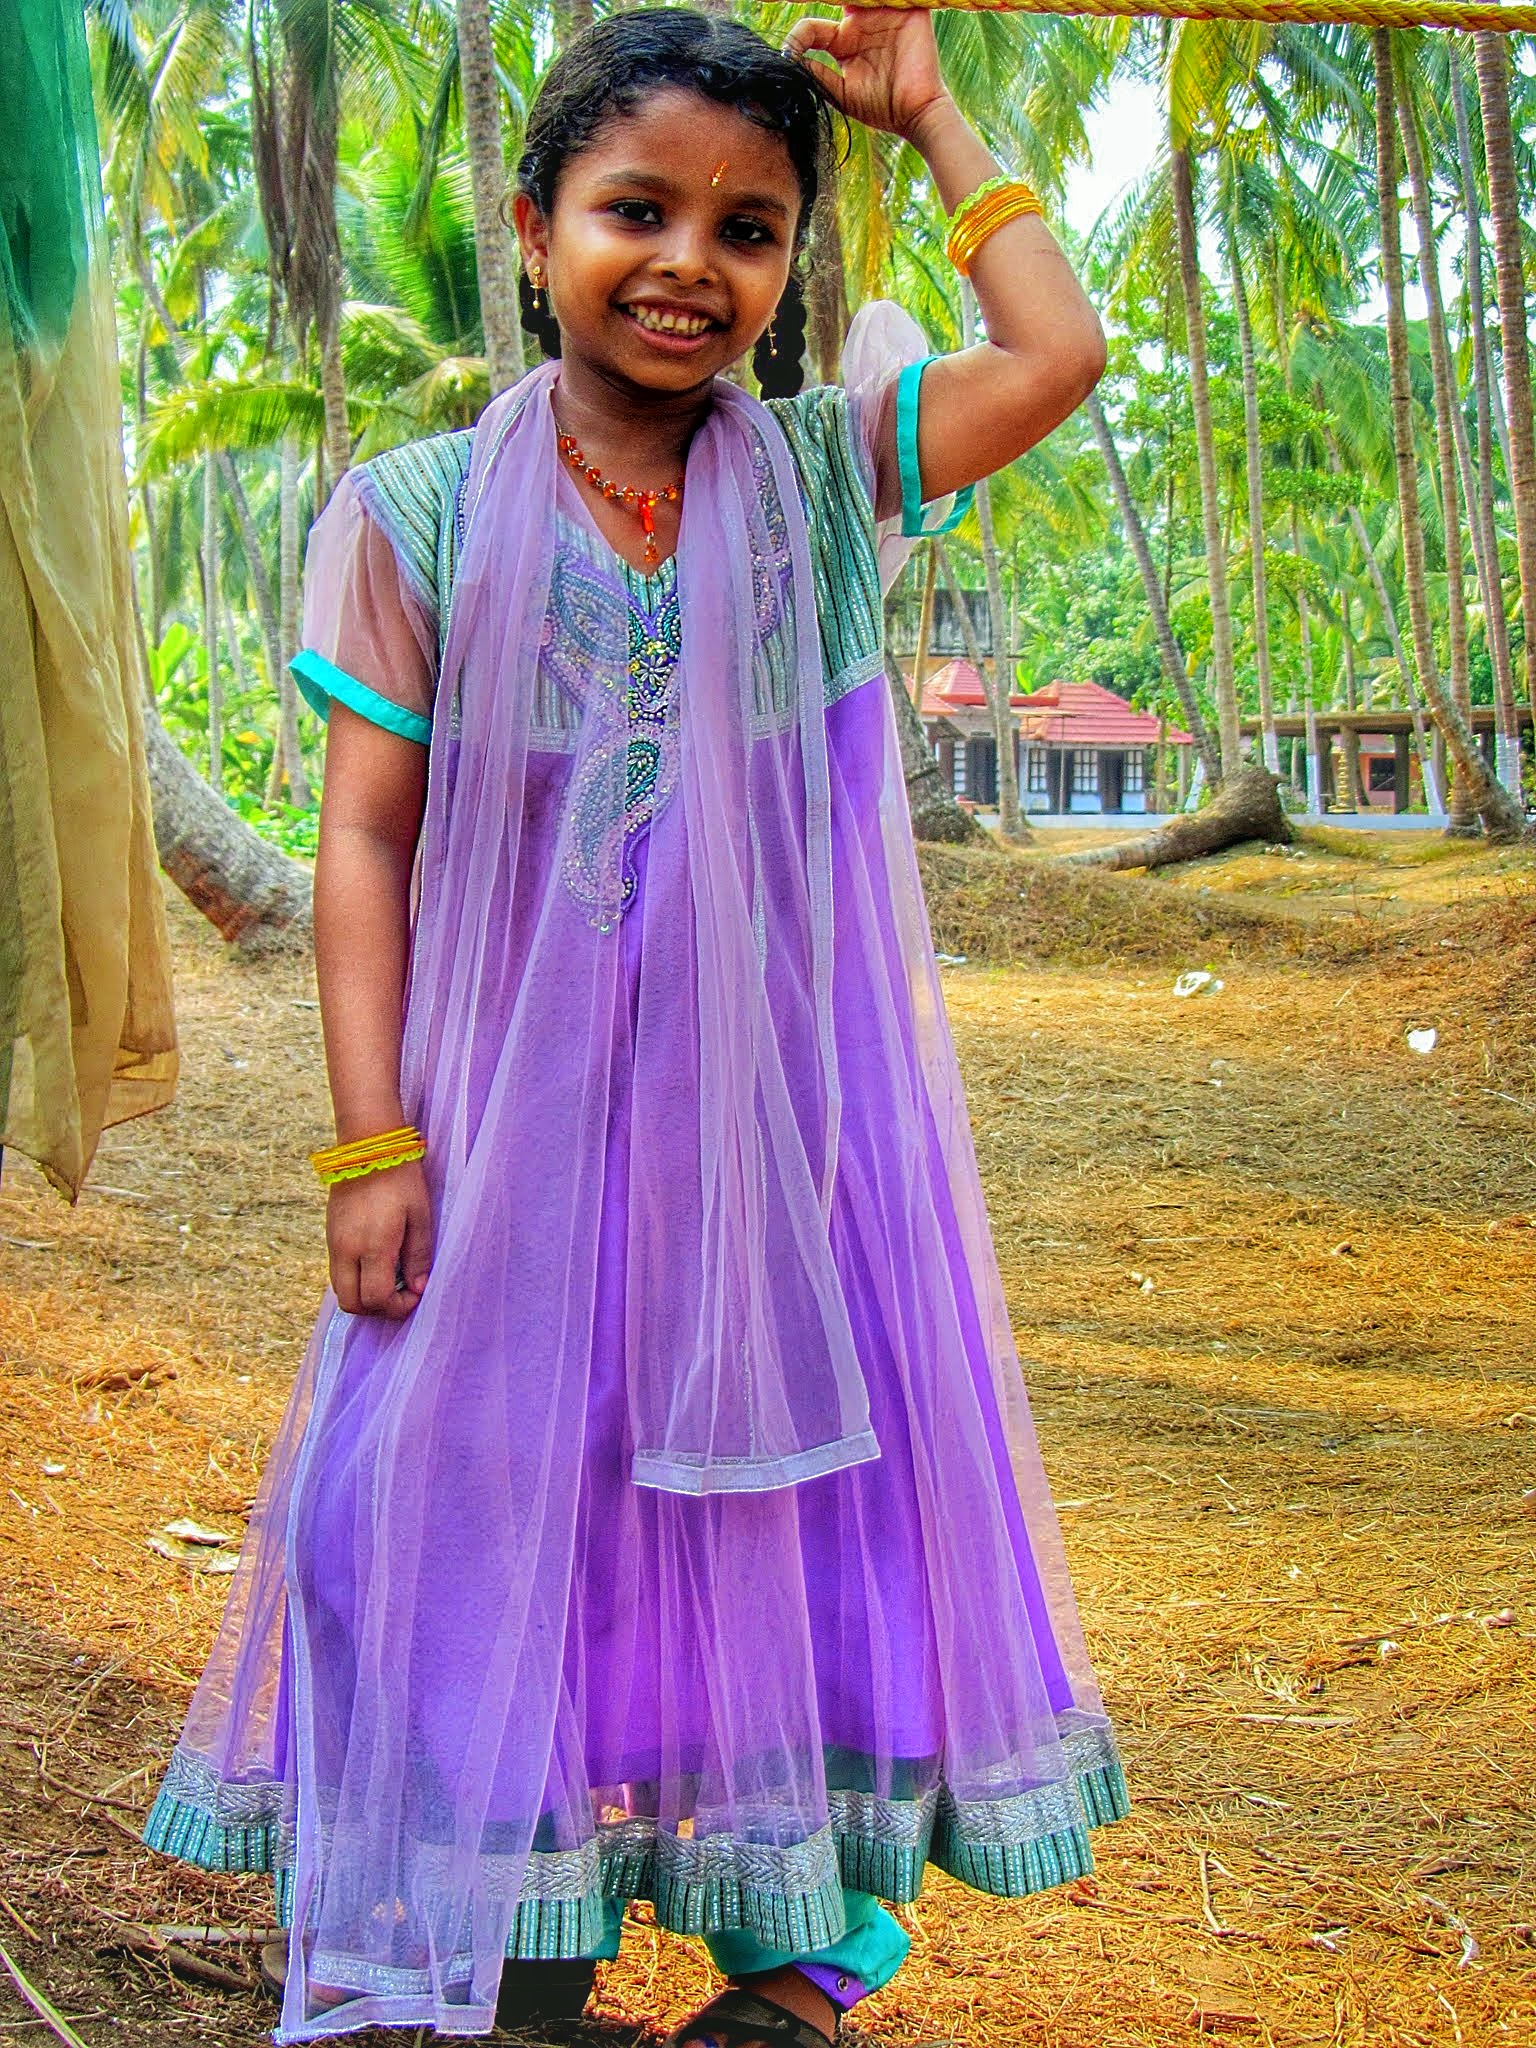 Little girl India